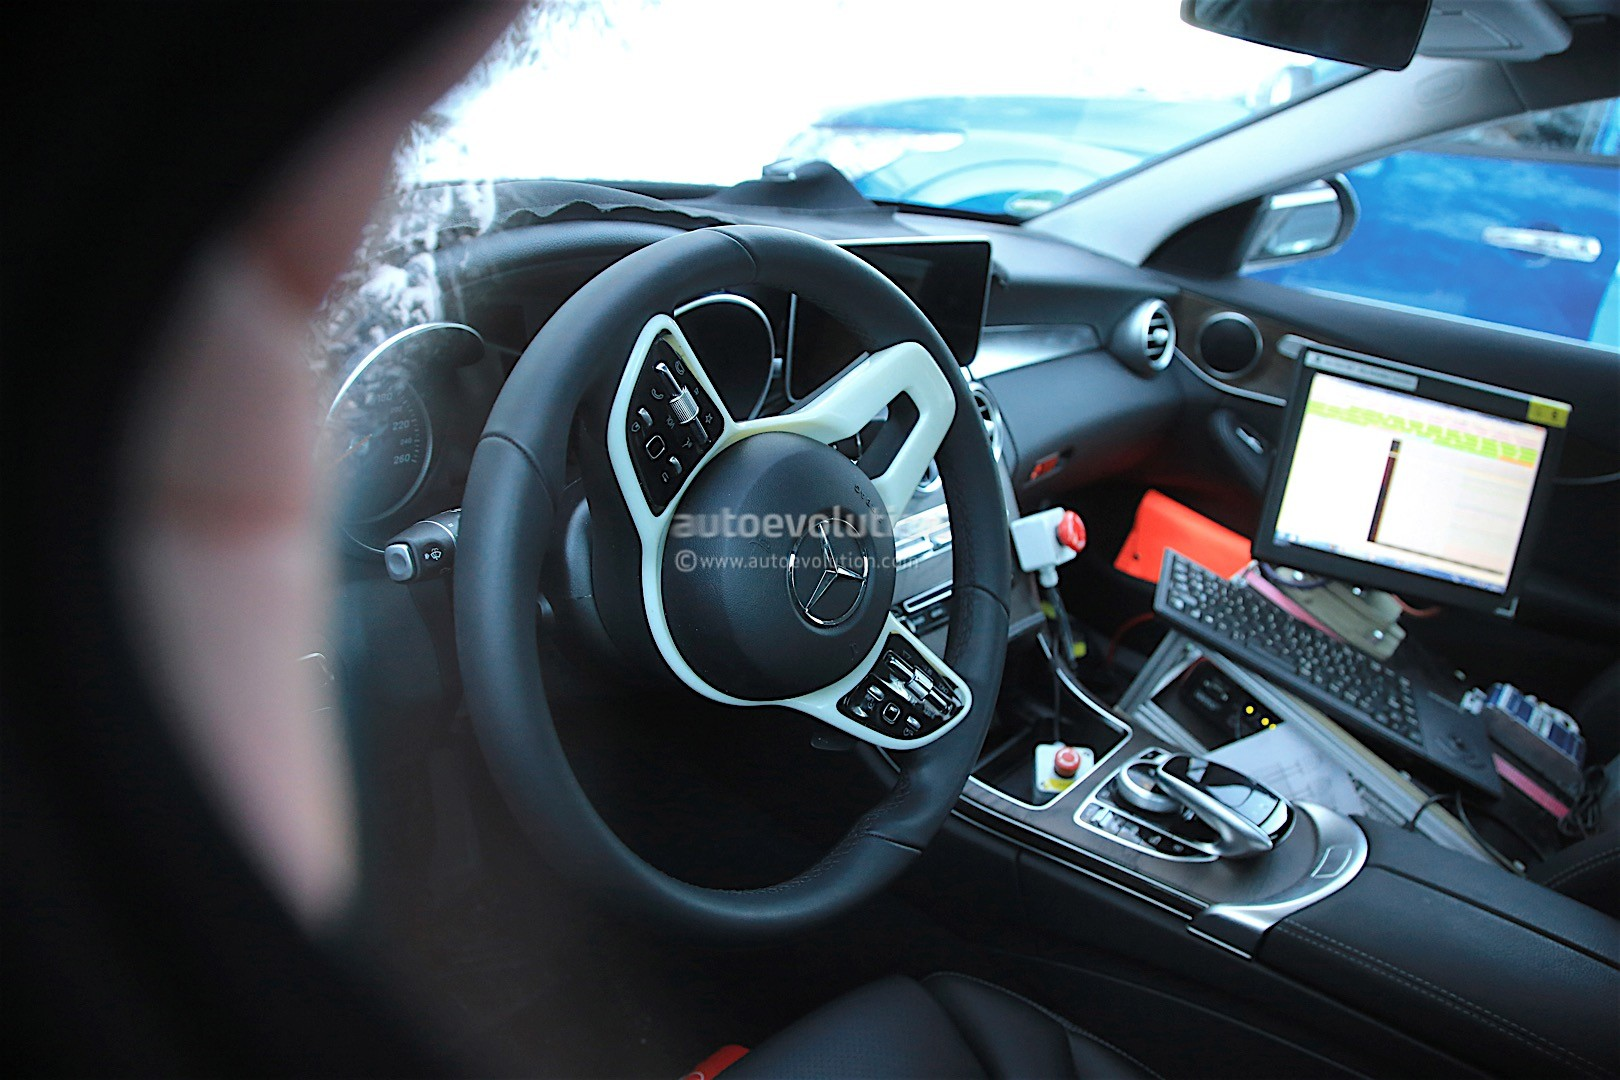 2018 mercedes benz c class facelift spied reveals more of its interior autoevolution. Black Bedroom Furniture Sets. Home Design Ideas